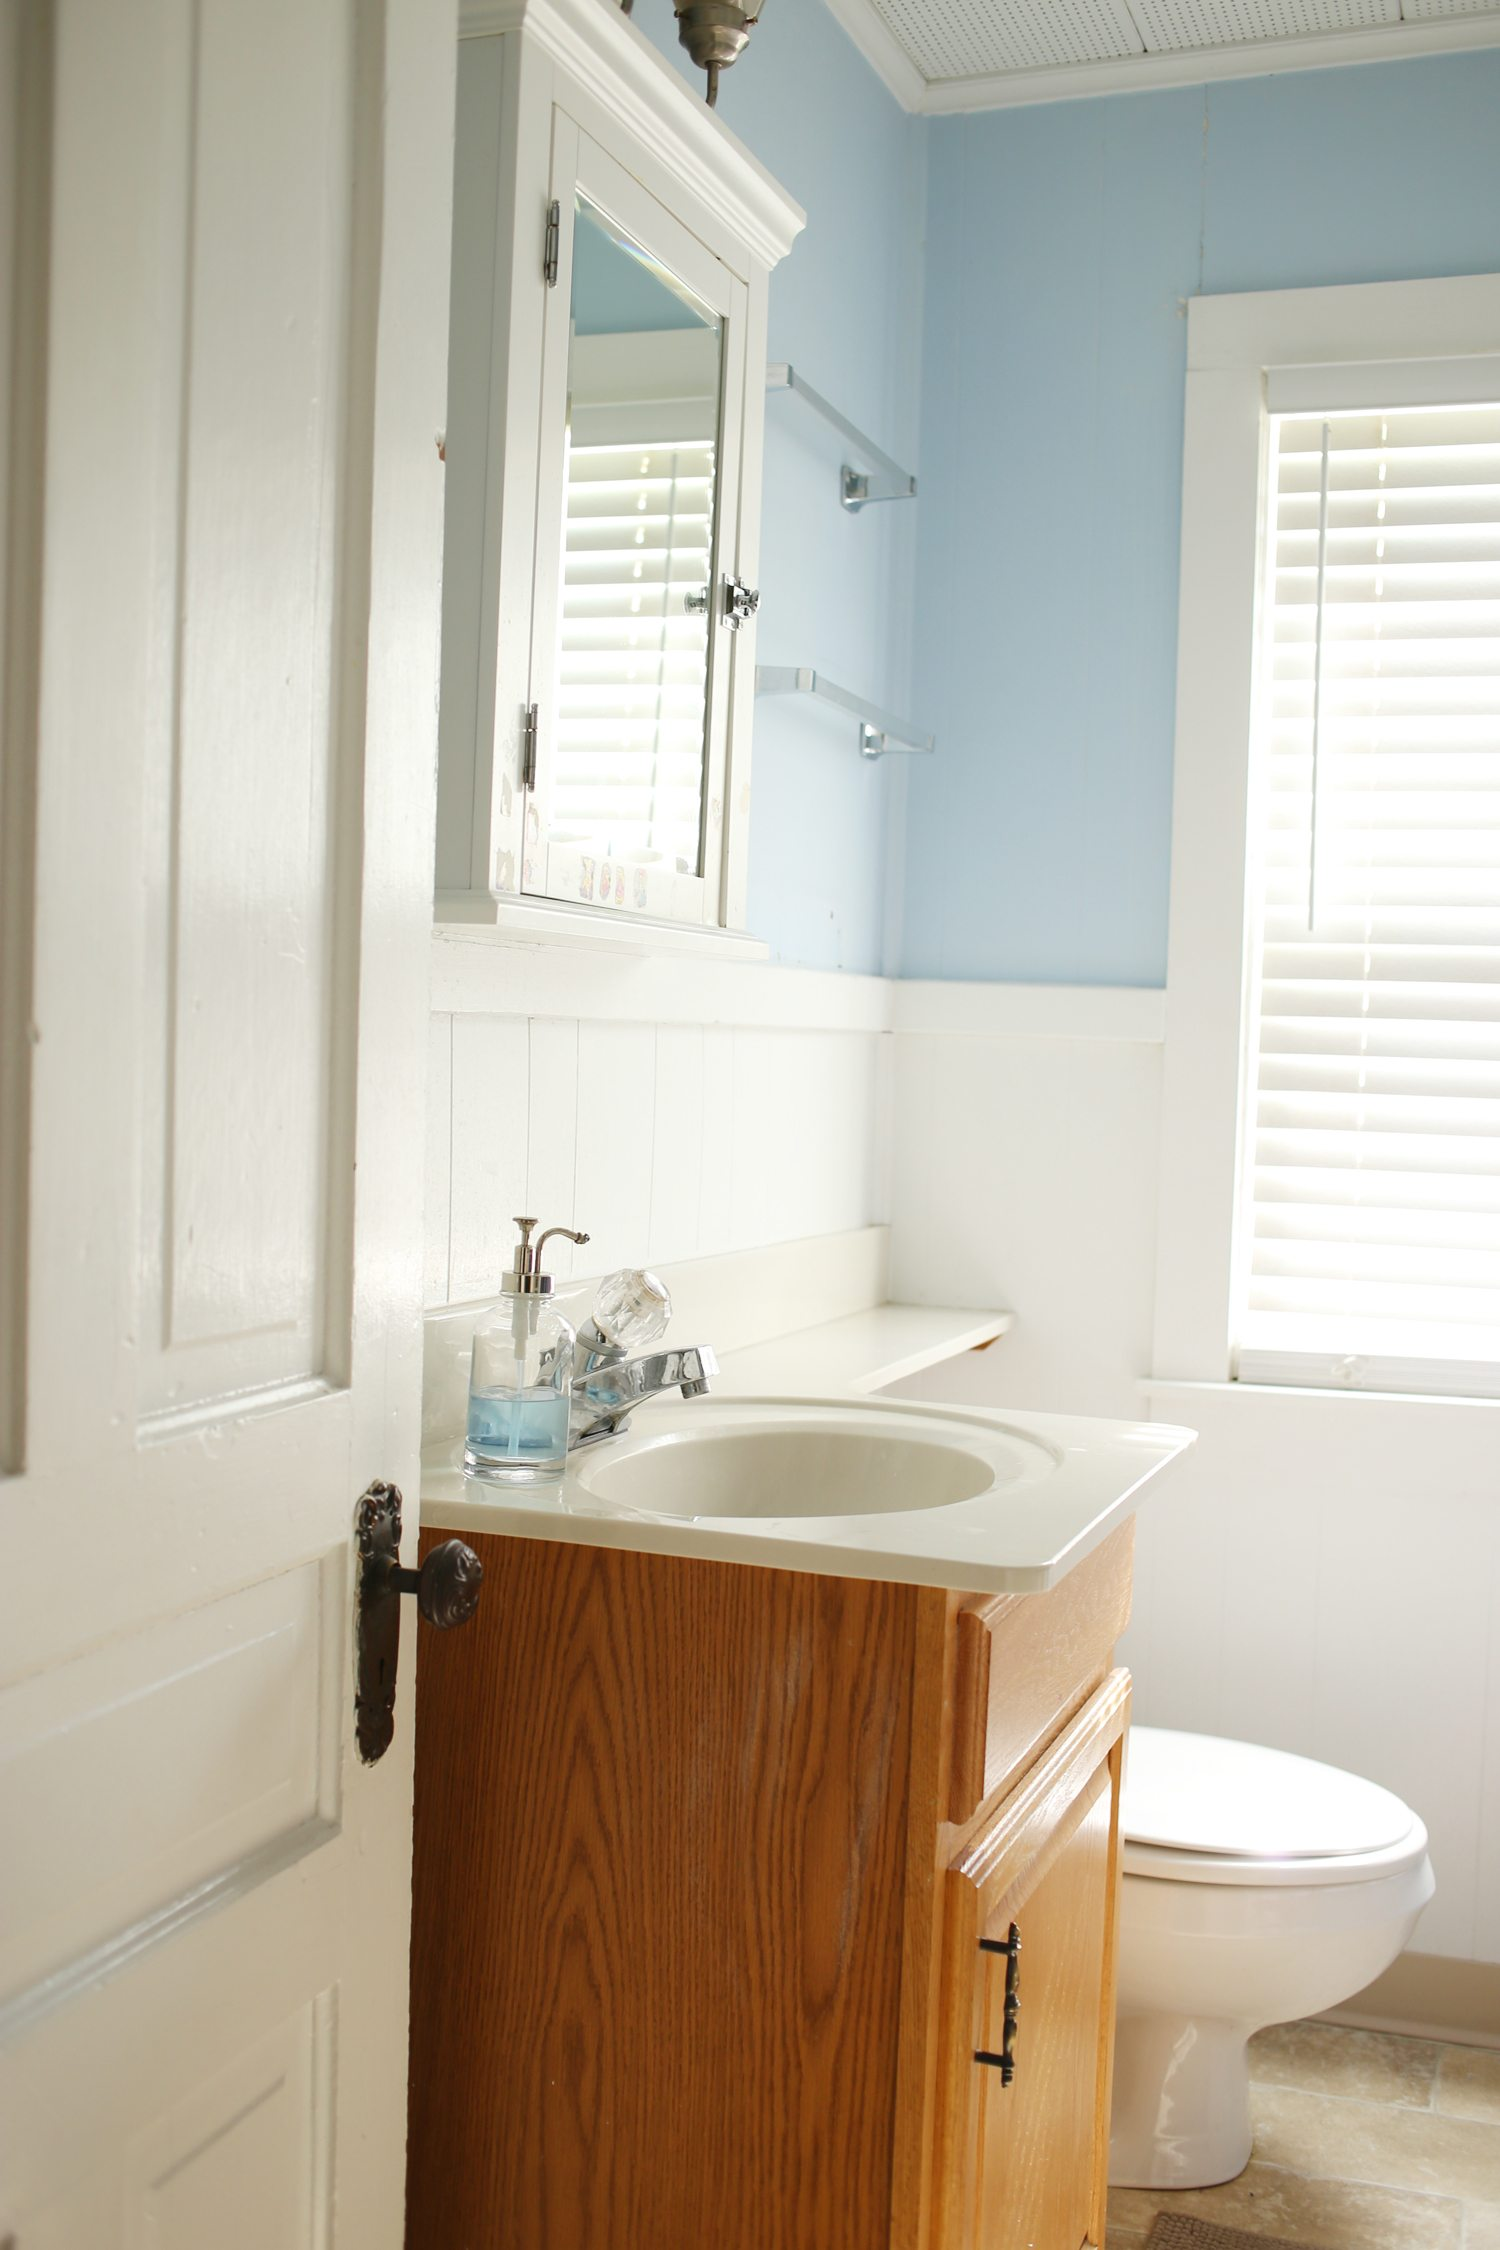 Stunning Mini Bathroom Renovation Bathroom Paint Colors from cydconverse and valsparpaint